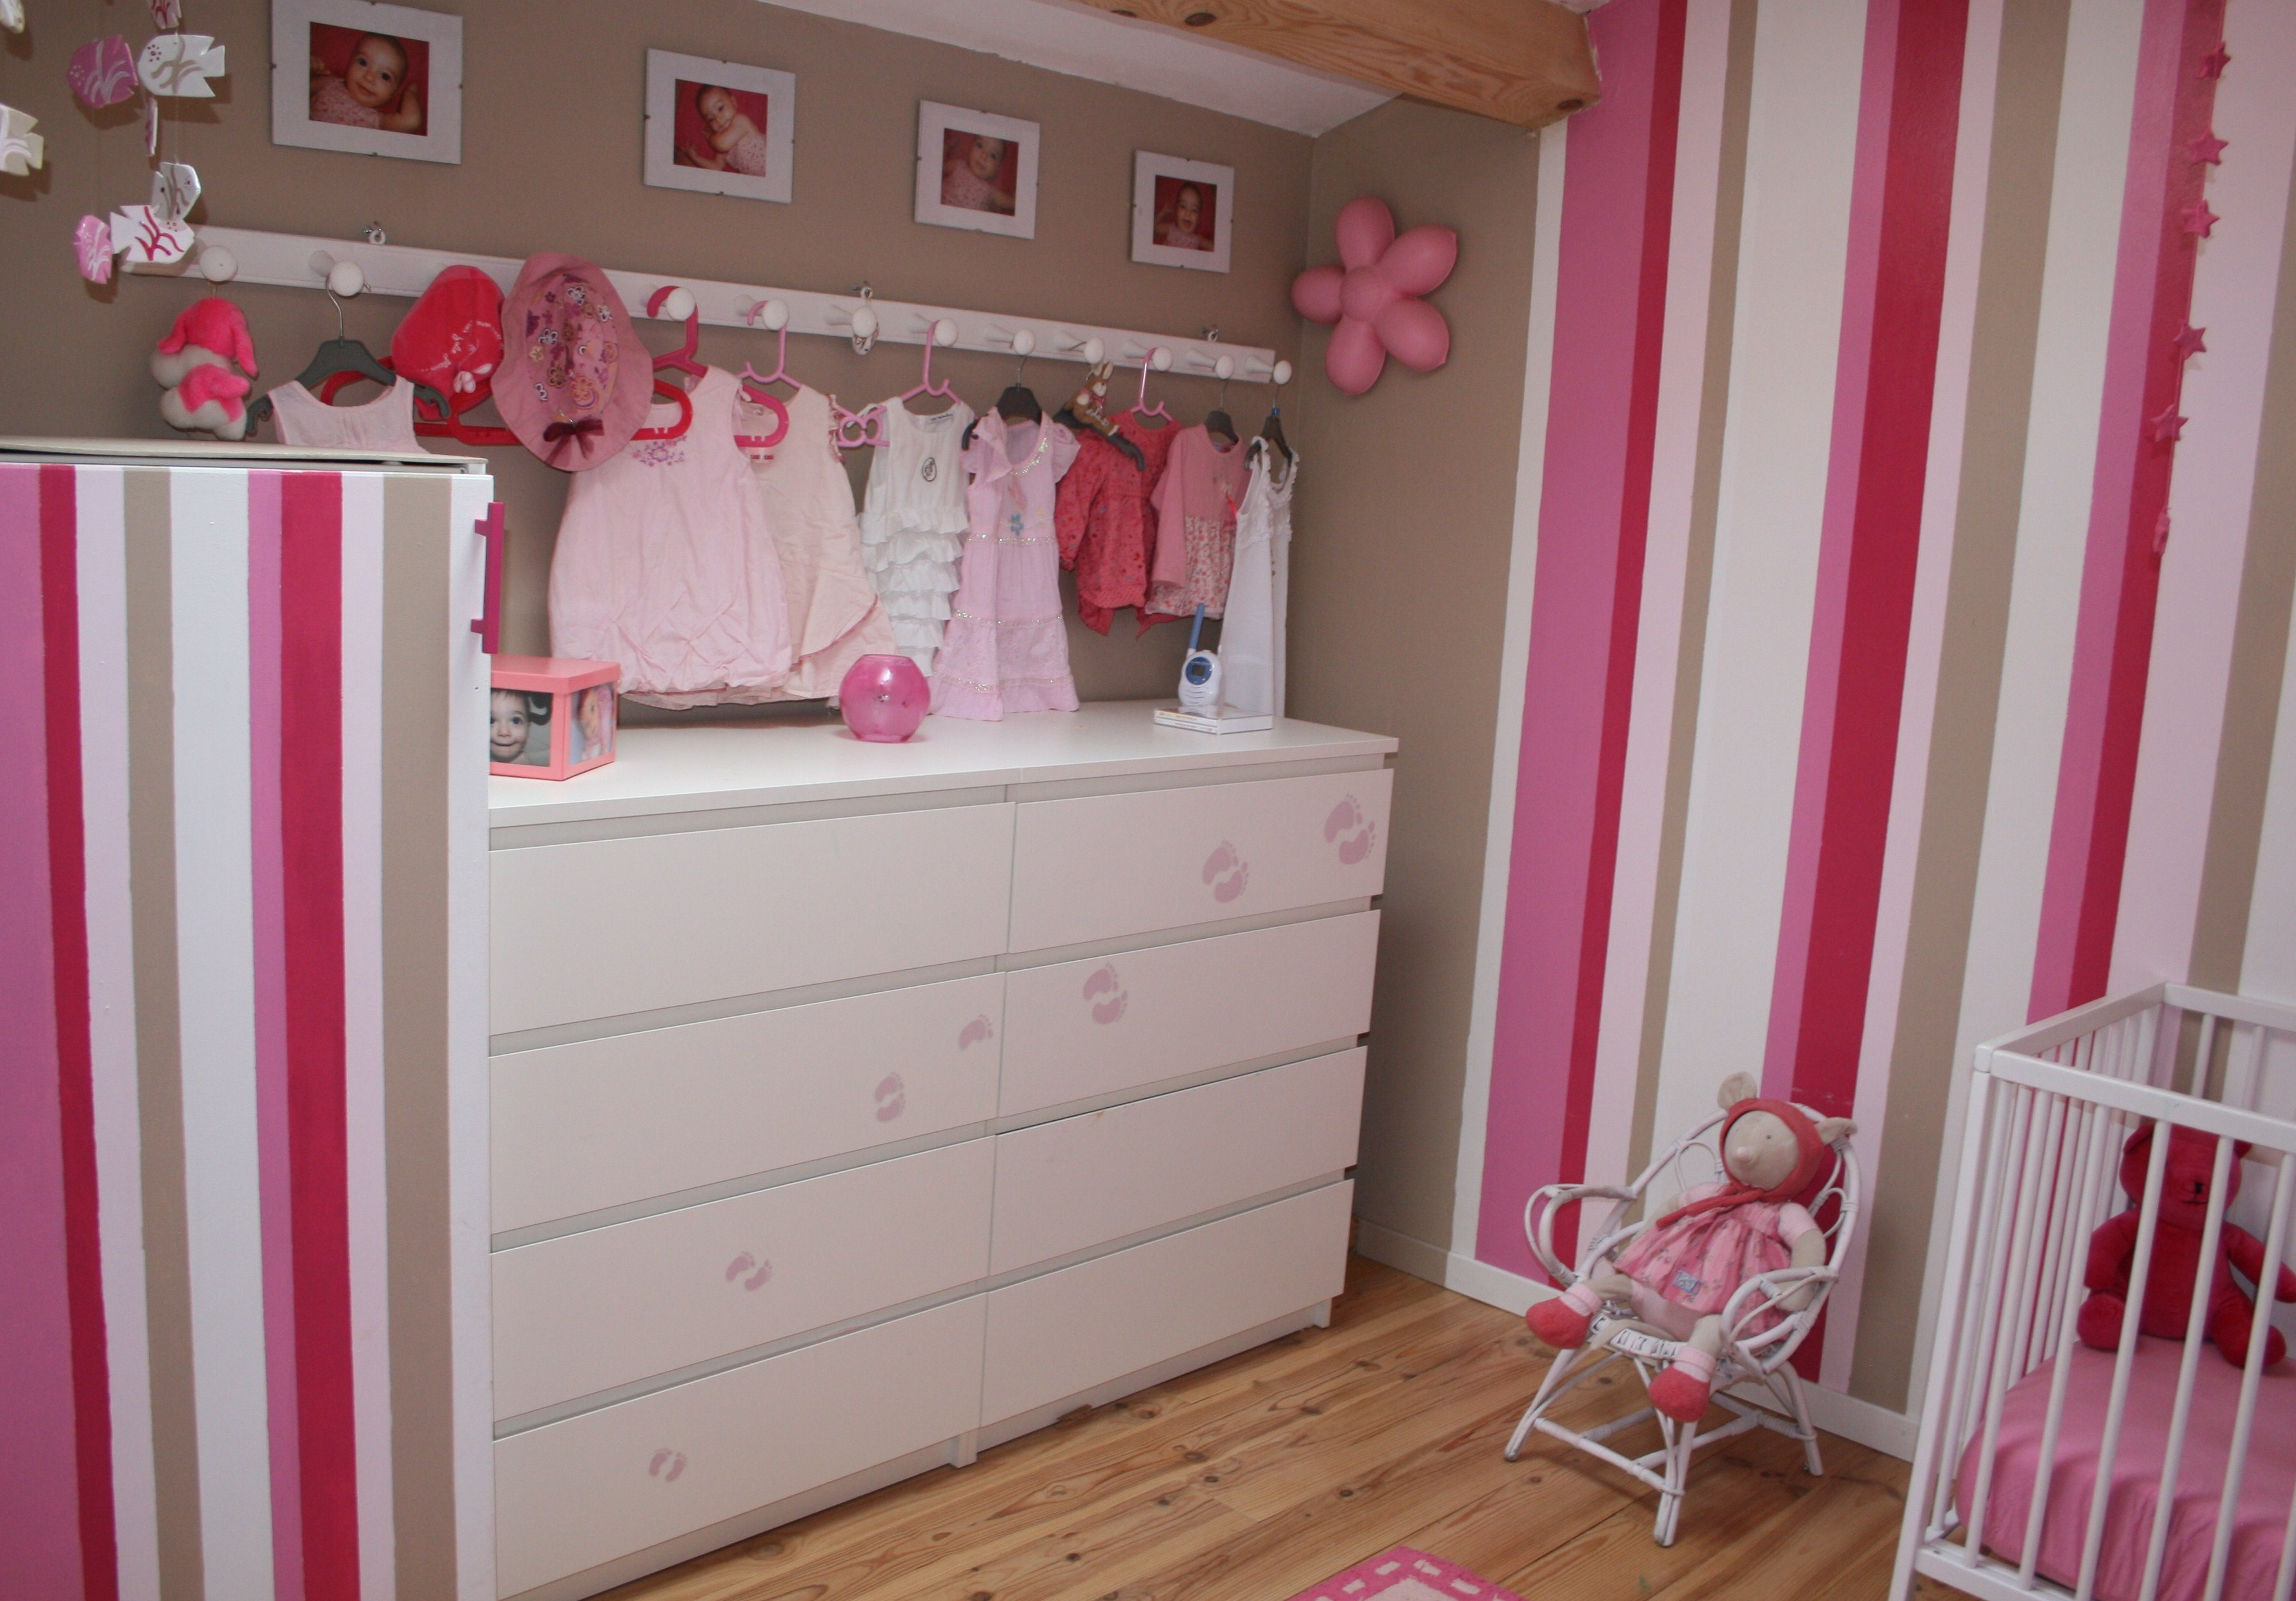 decoration chambre bebe fille photo chambre petite fille en ides de design et dcoration chambre. Black Bedroom Furniture Sets. Home Design Ideas